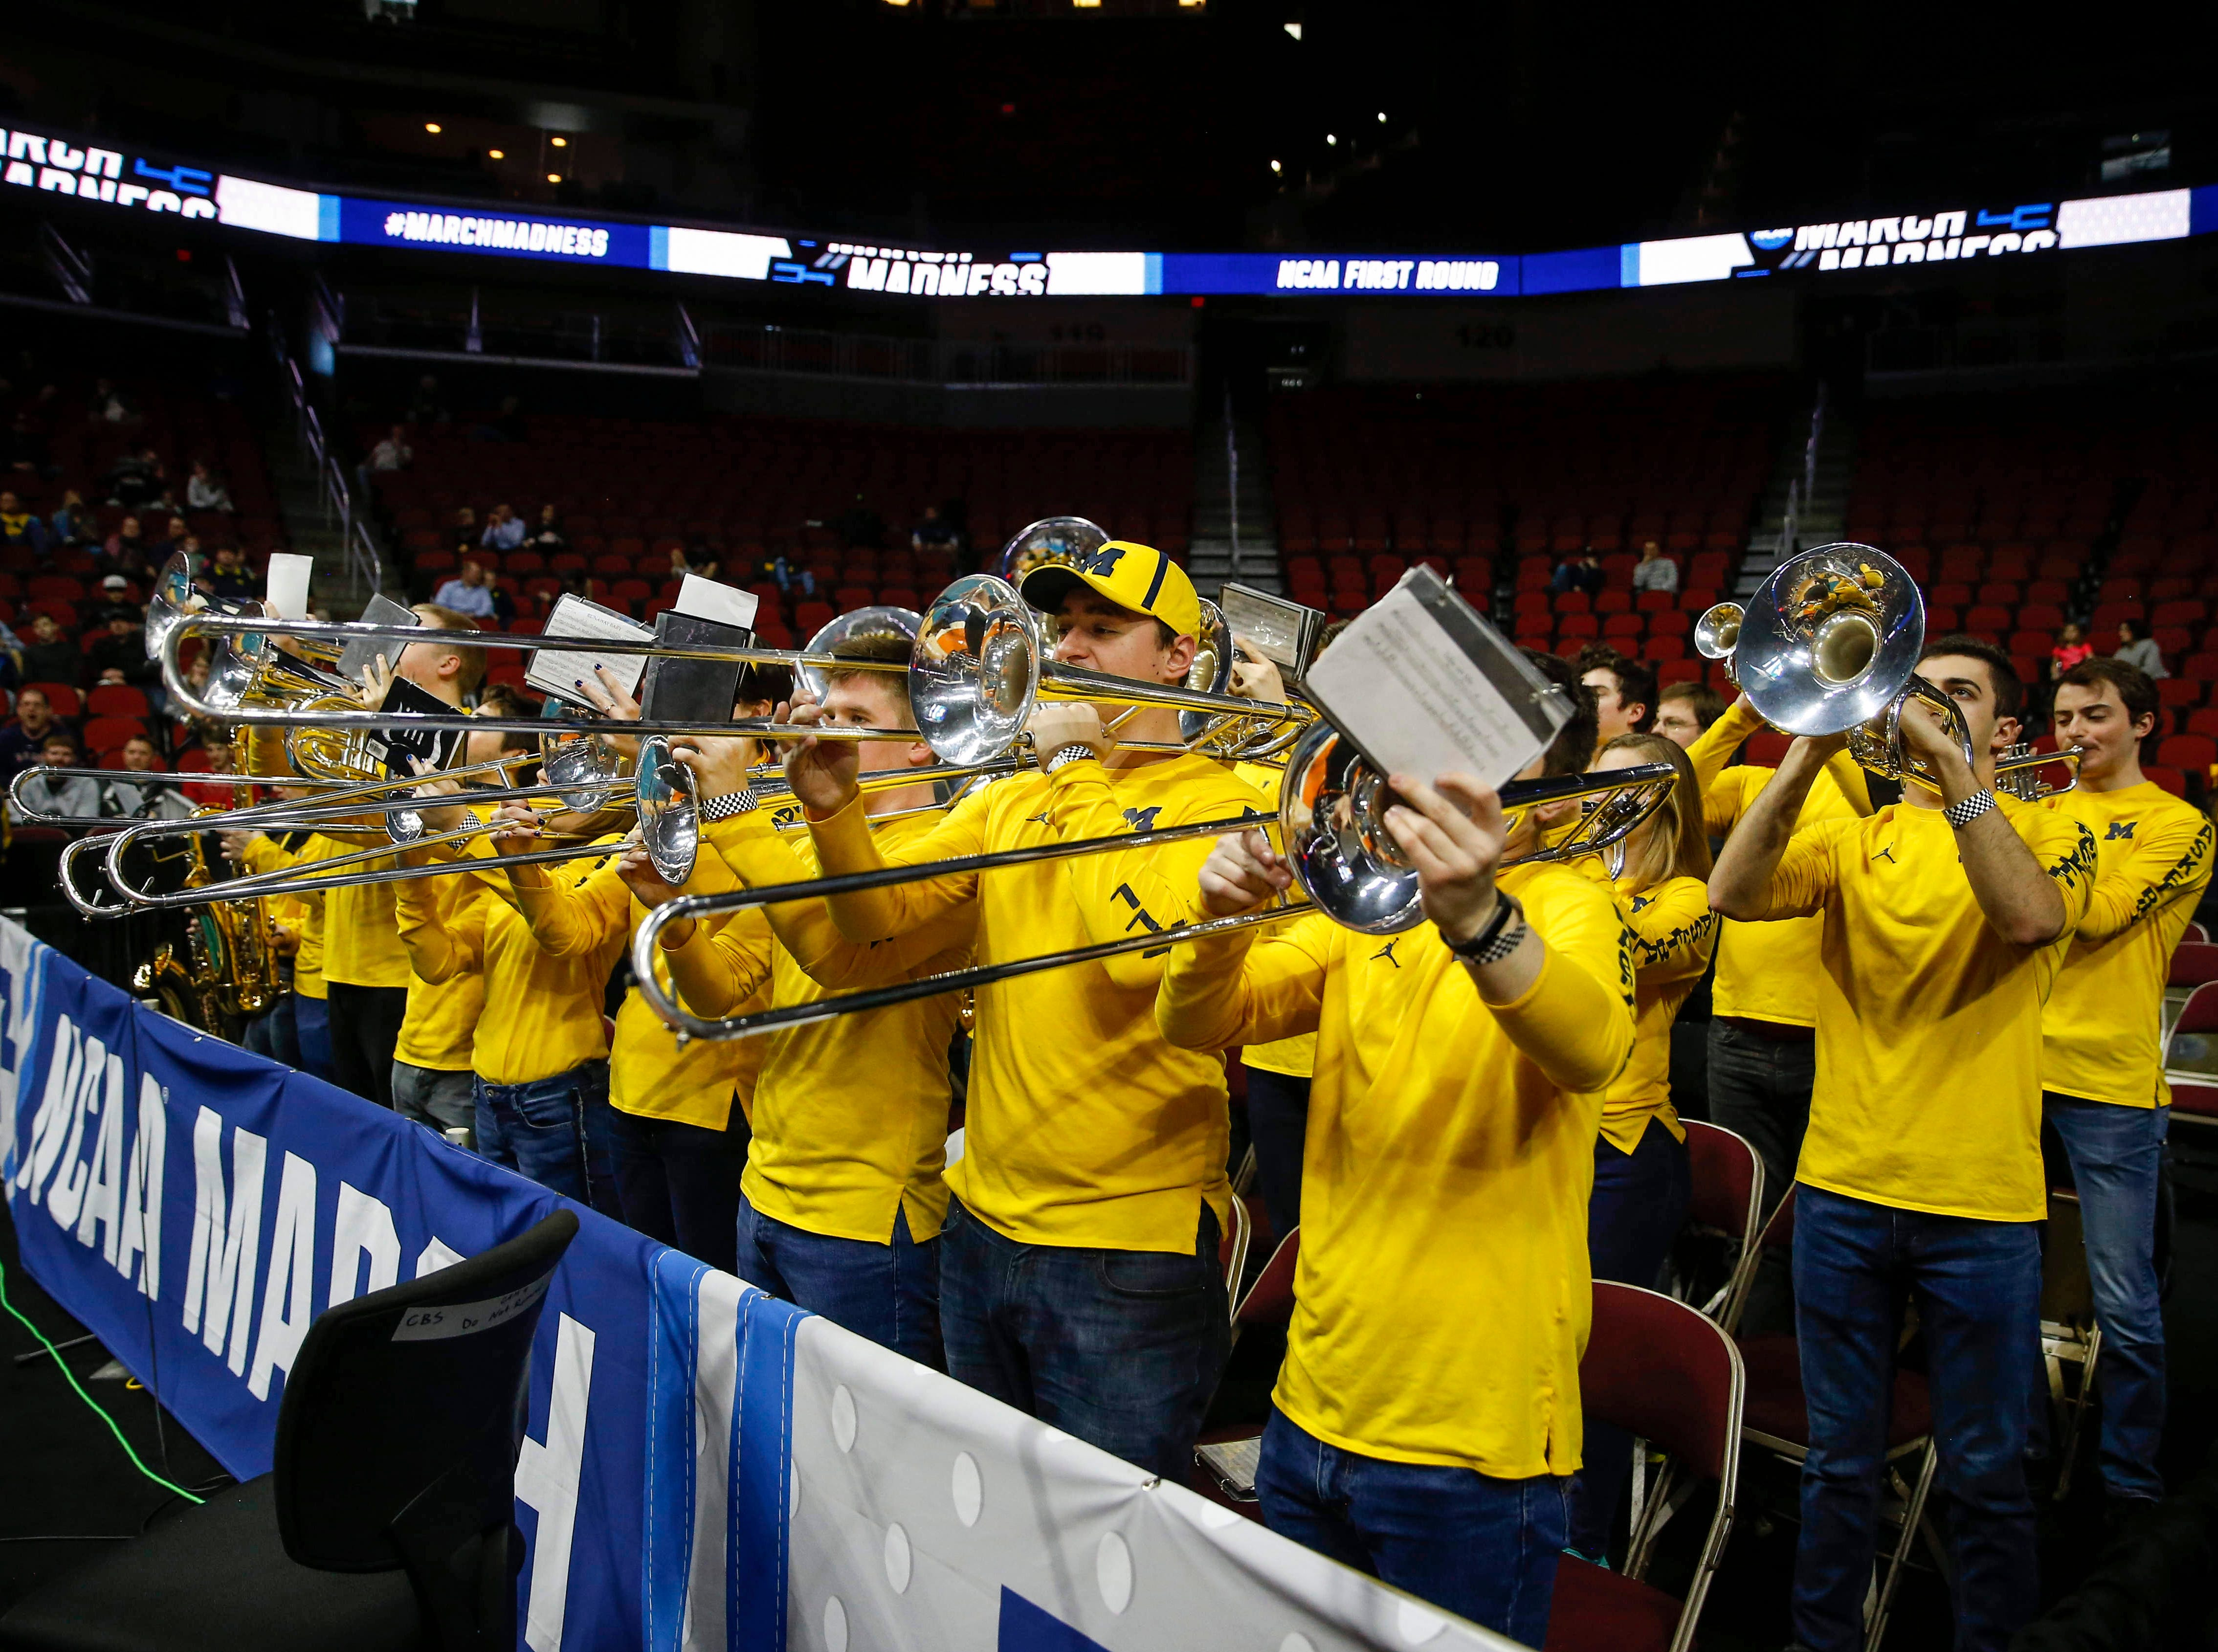 Members of the Michigan band play as the men's basketball team takes the court for open practice on Wednesday, March 20, 2019, at Wells Fargo Arena in Des Moines, Iowa.